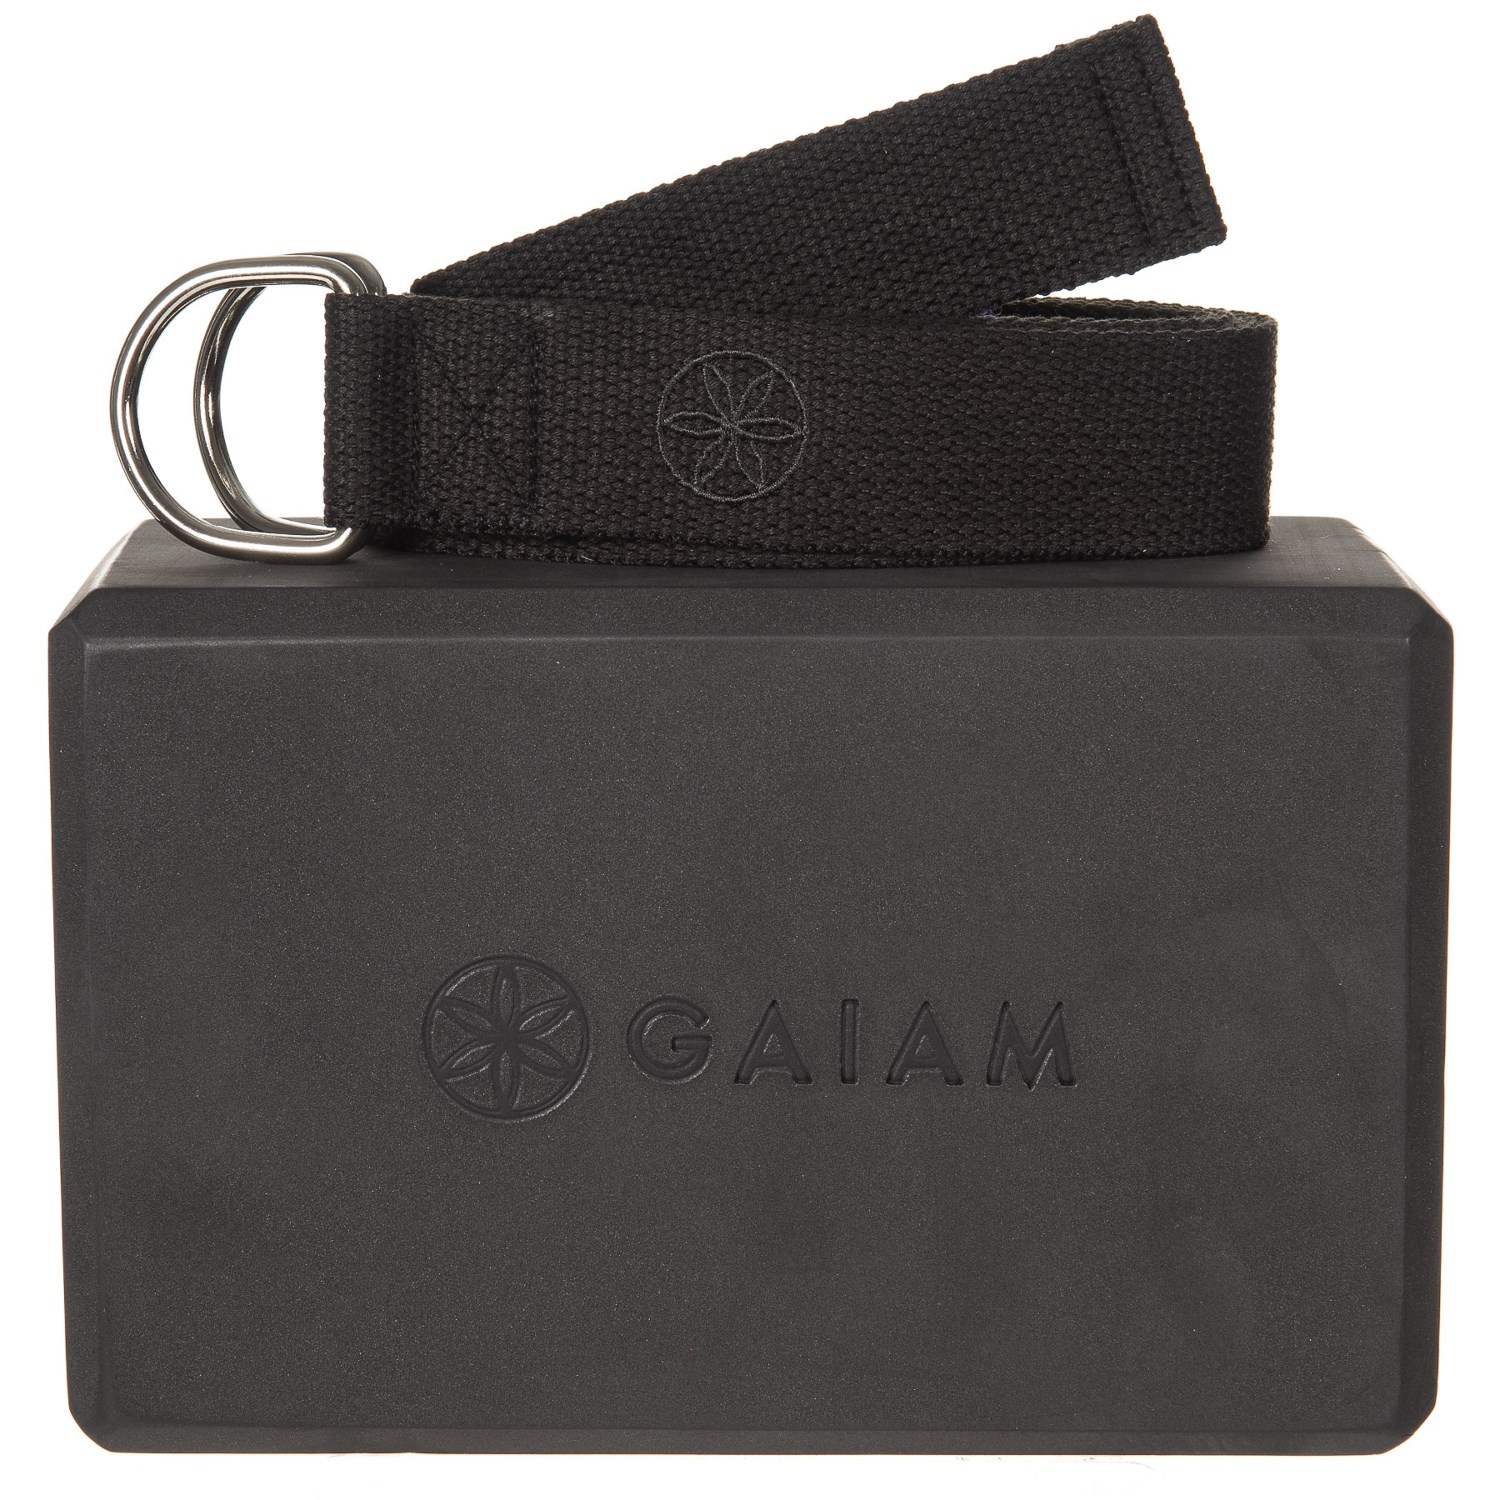 Gaiam Yoga Block Strap Combo Black Save 33